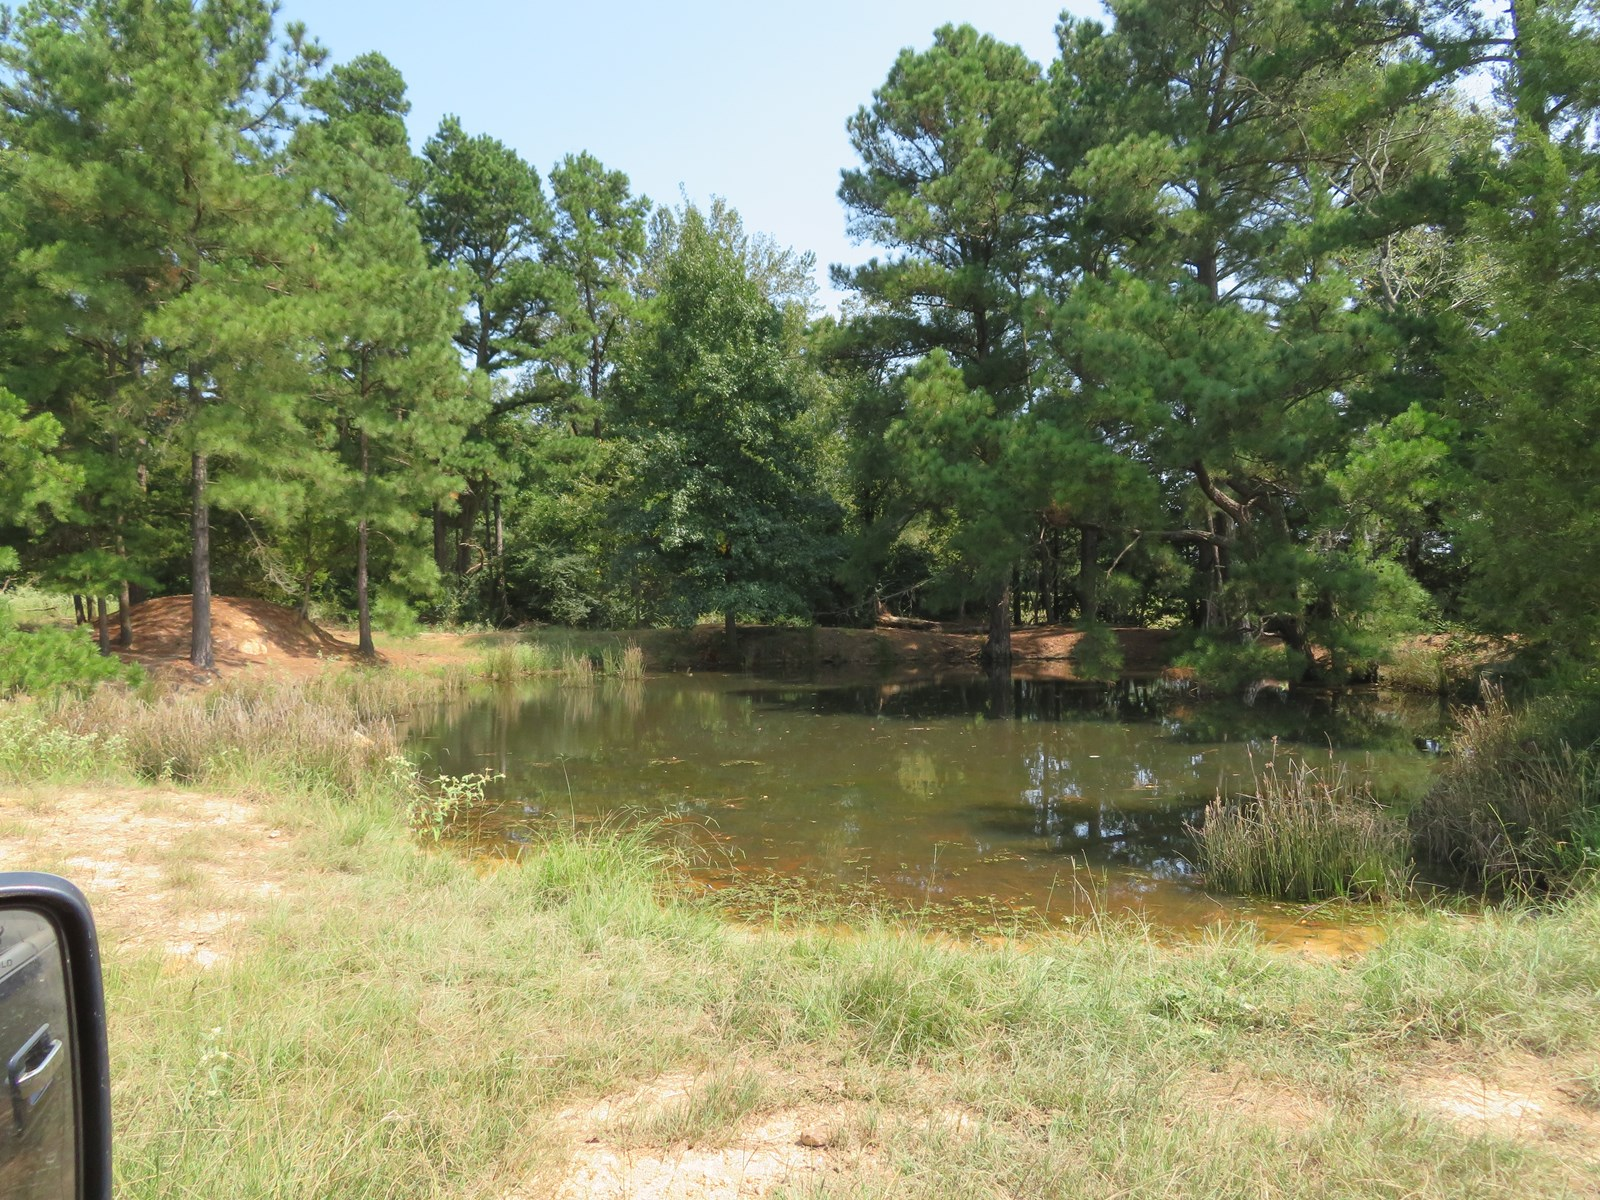 East Tx Land For Sale 98.8± acres in Cass County, Texas